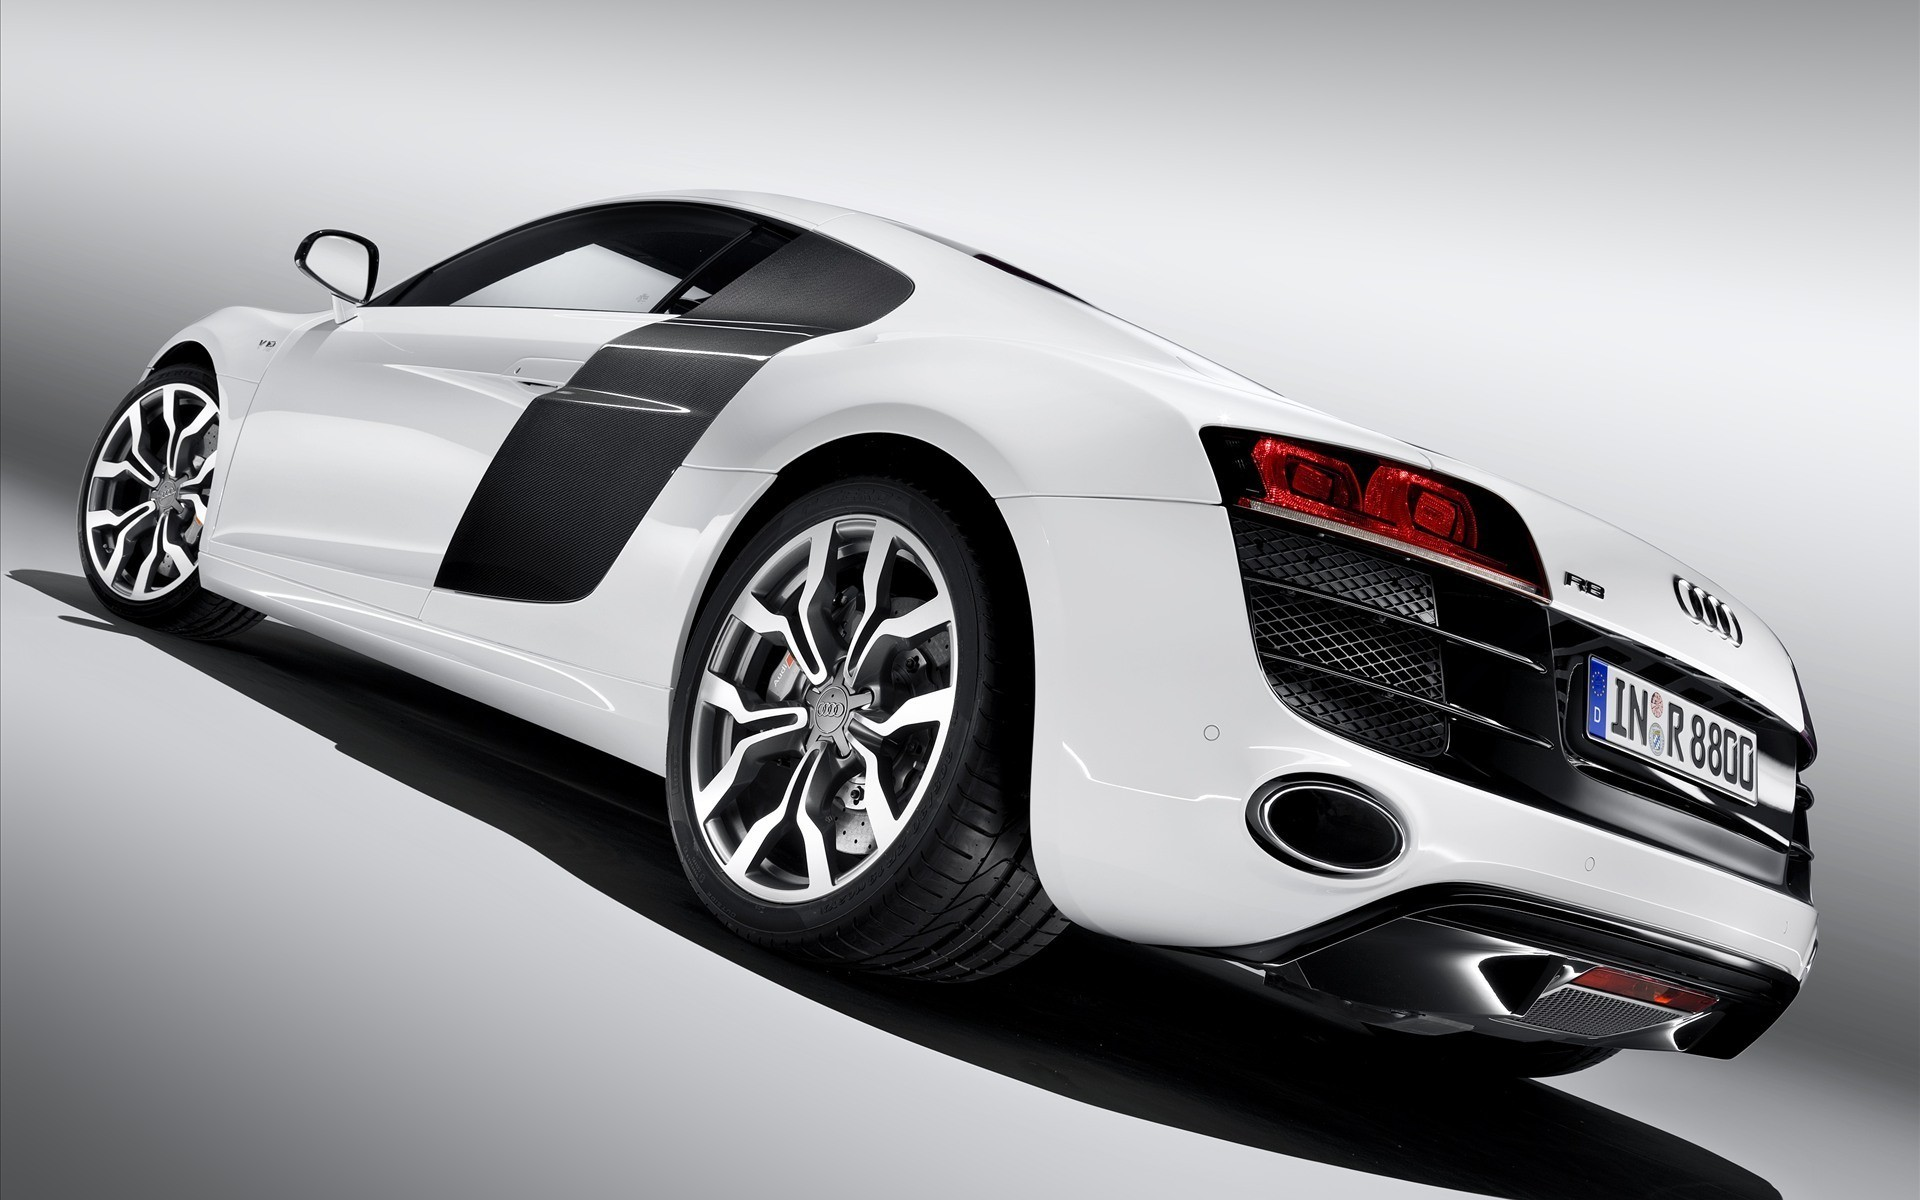 Car Audi R8 VS, rear view photo